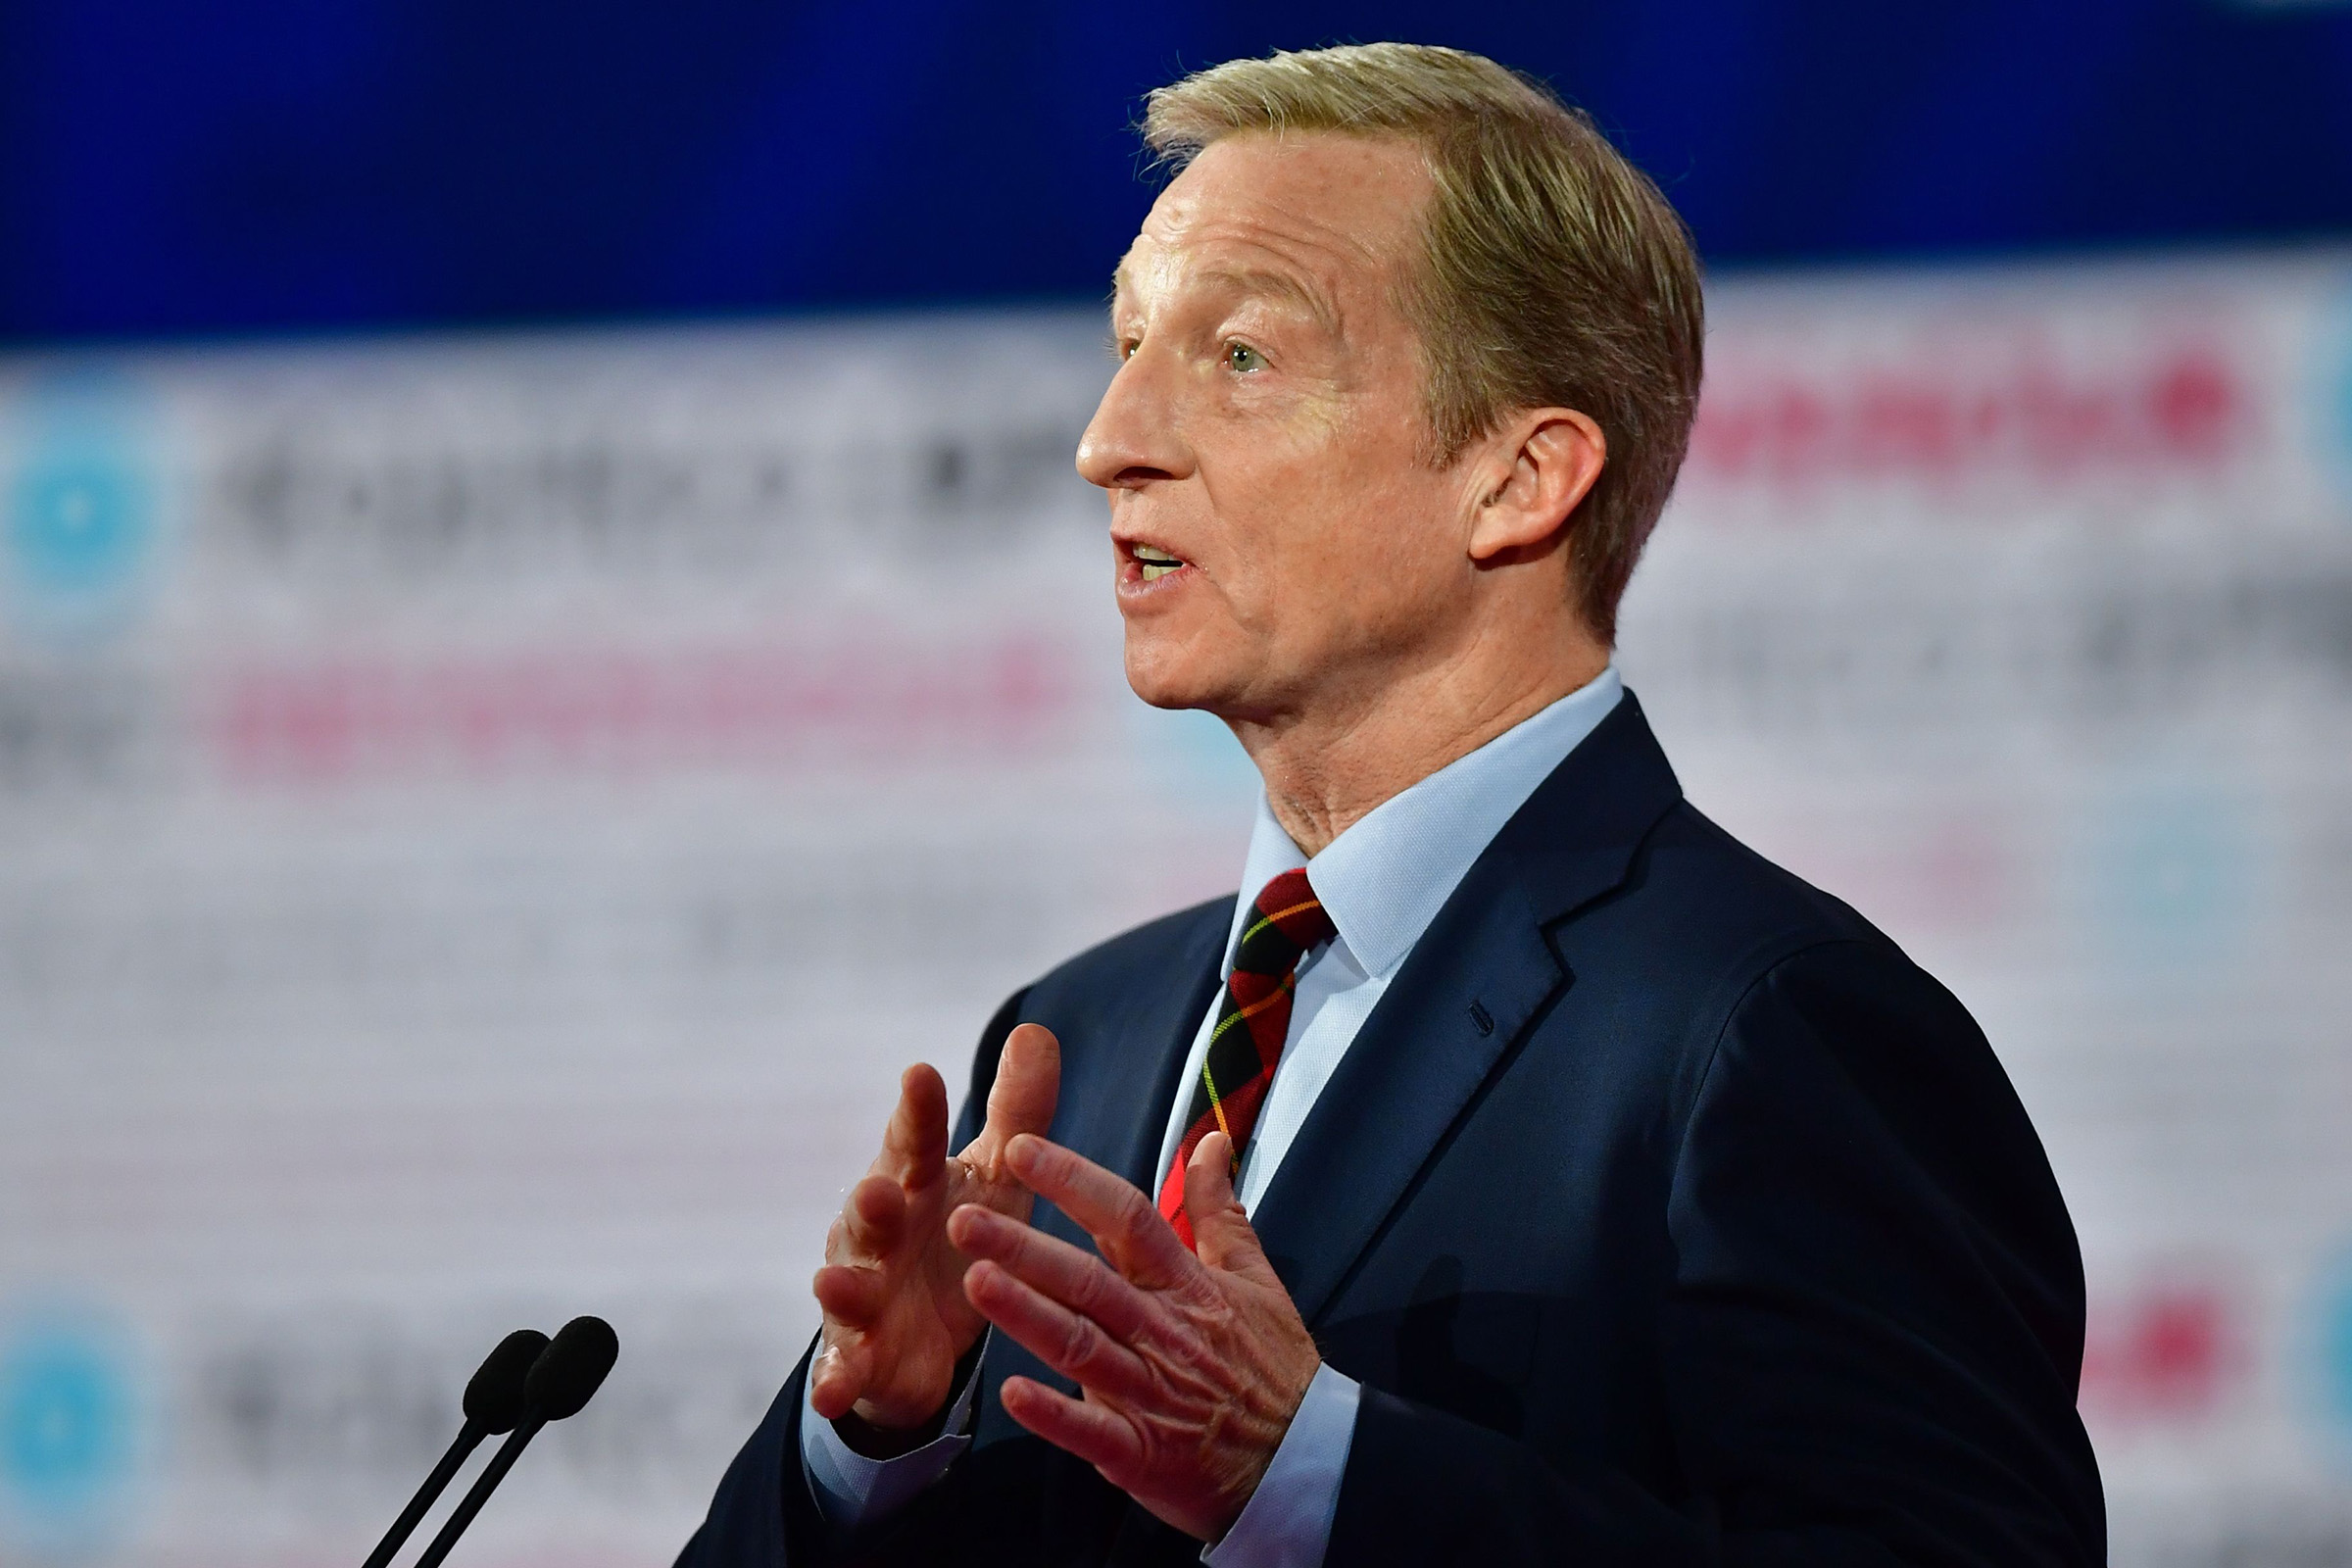 Democratic presidential hopeful billionaire and philanthropist Tom Steyer speaks on stage during the sixth Democratic primary debate of the 2020 presidential campaign in Los Angeles on Dec. 19, 2019.